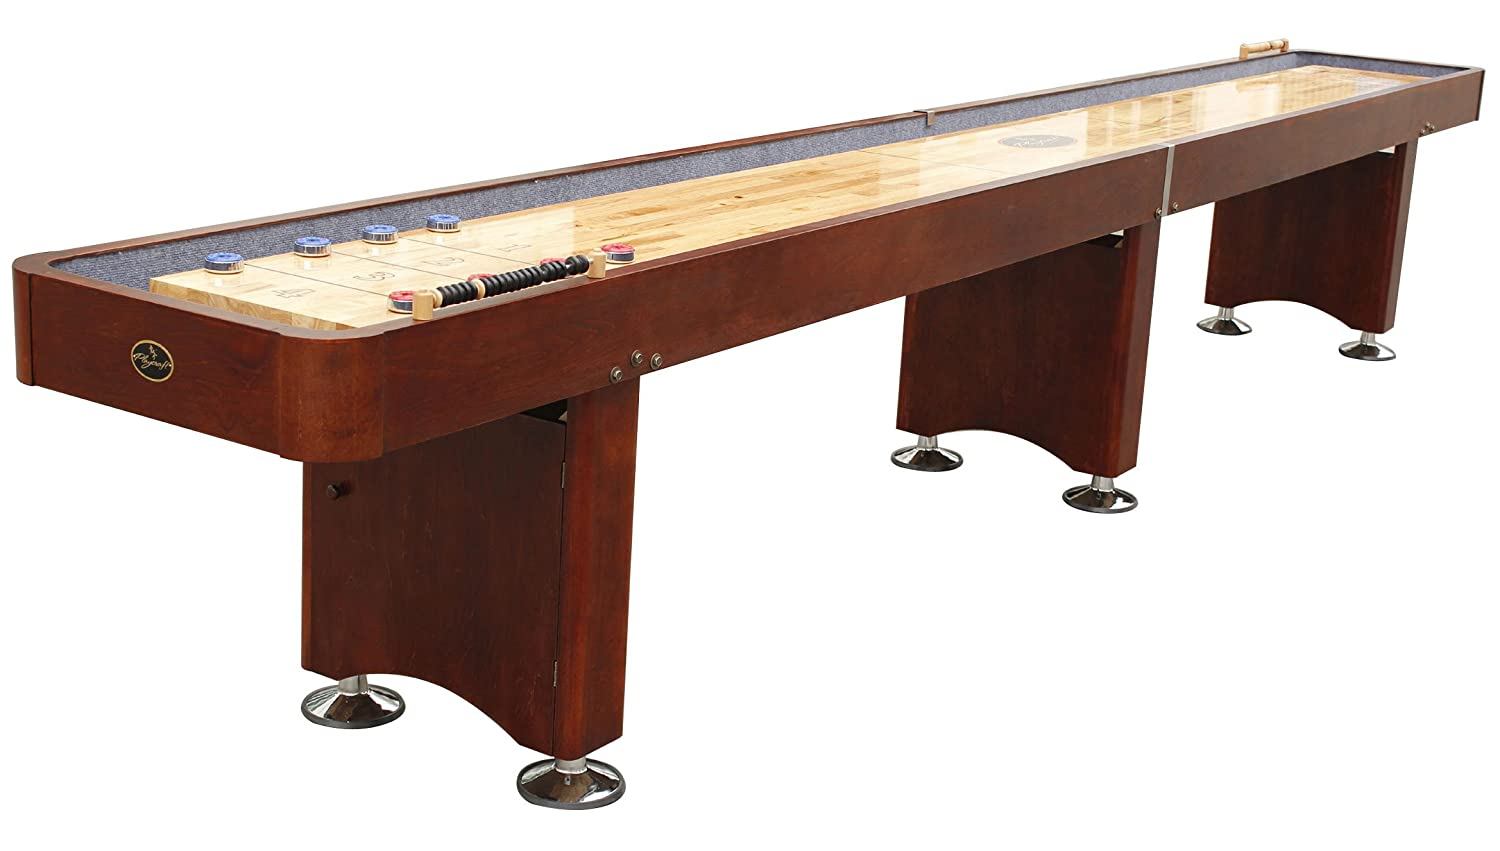 71yW3 IkECL._SL1500_ amazon com playcraft georgetown shuffleboard table sports  at edmiracle.co